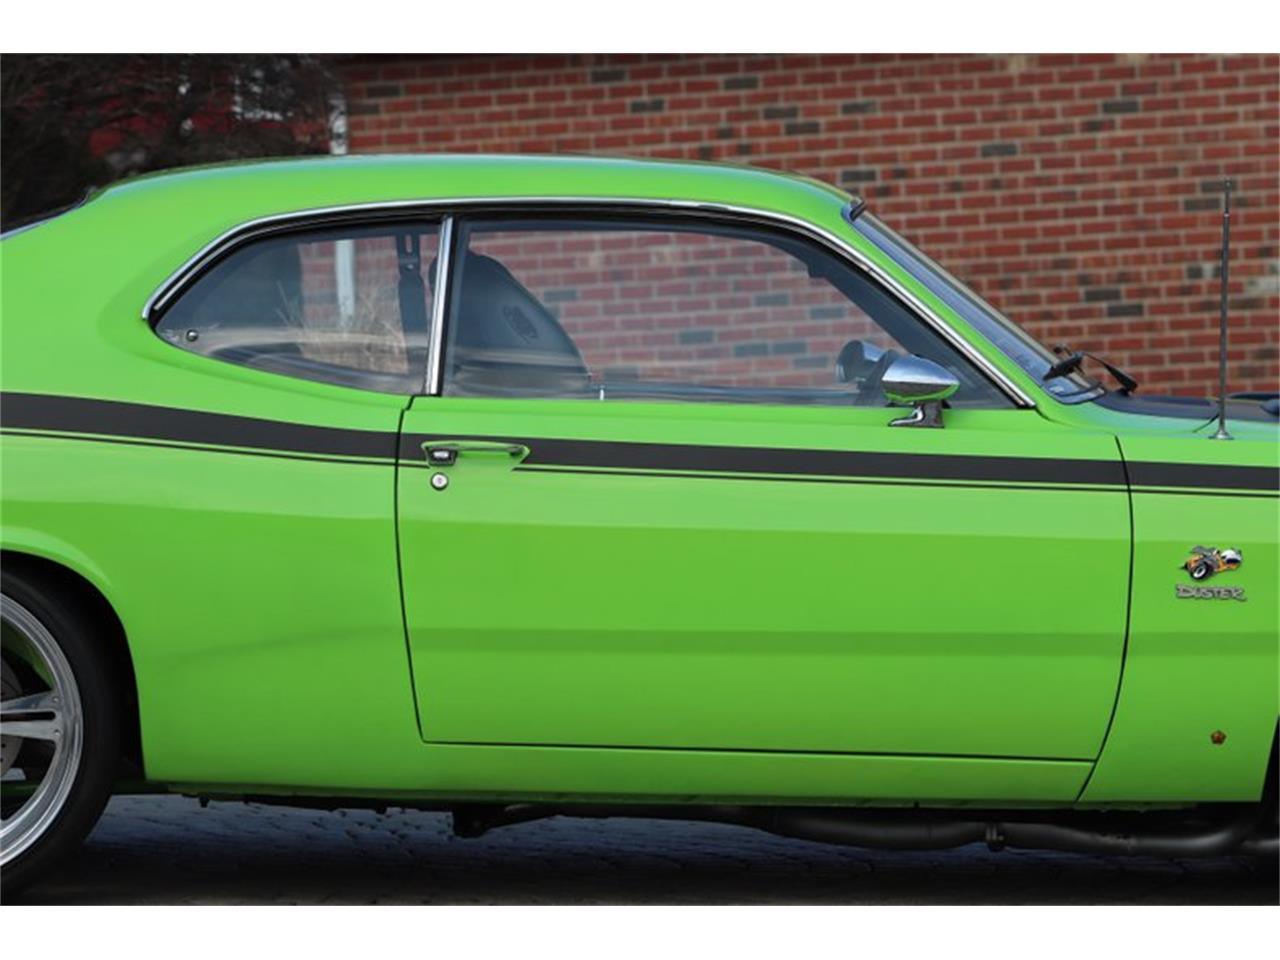 1970 Plymouth Duster for sale in Alsip, IL – photo 30